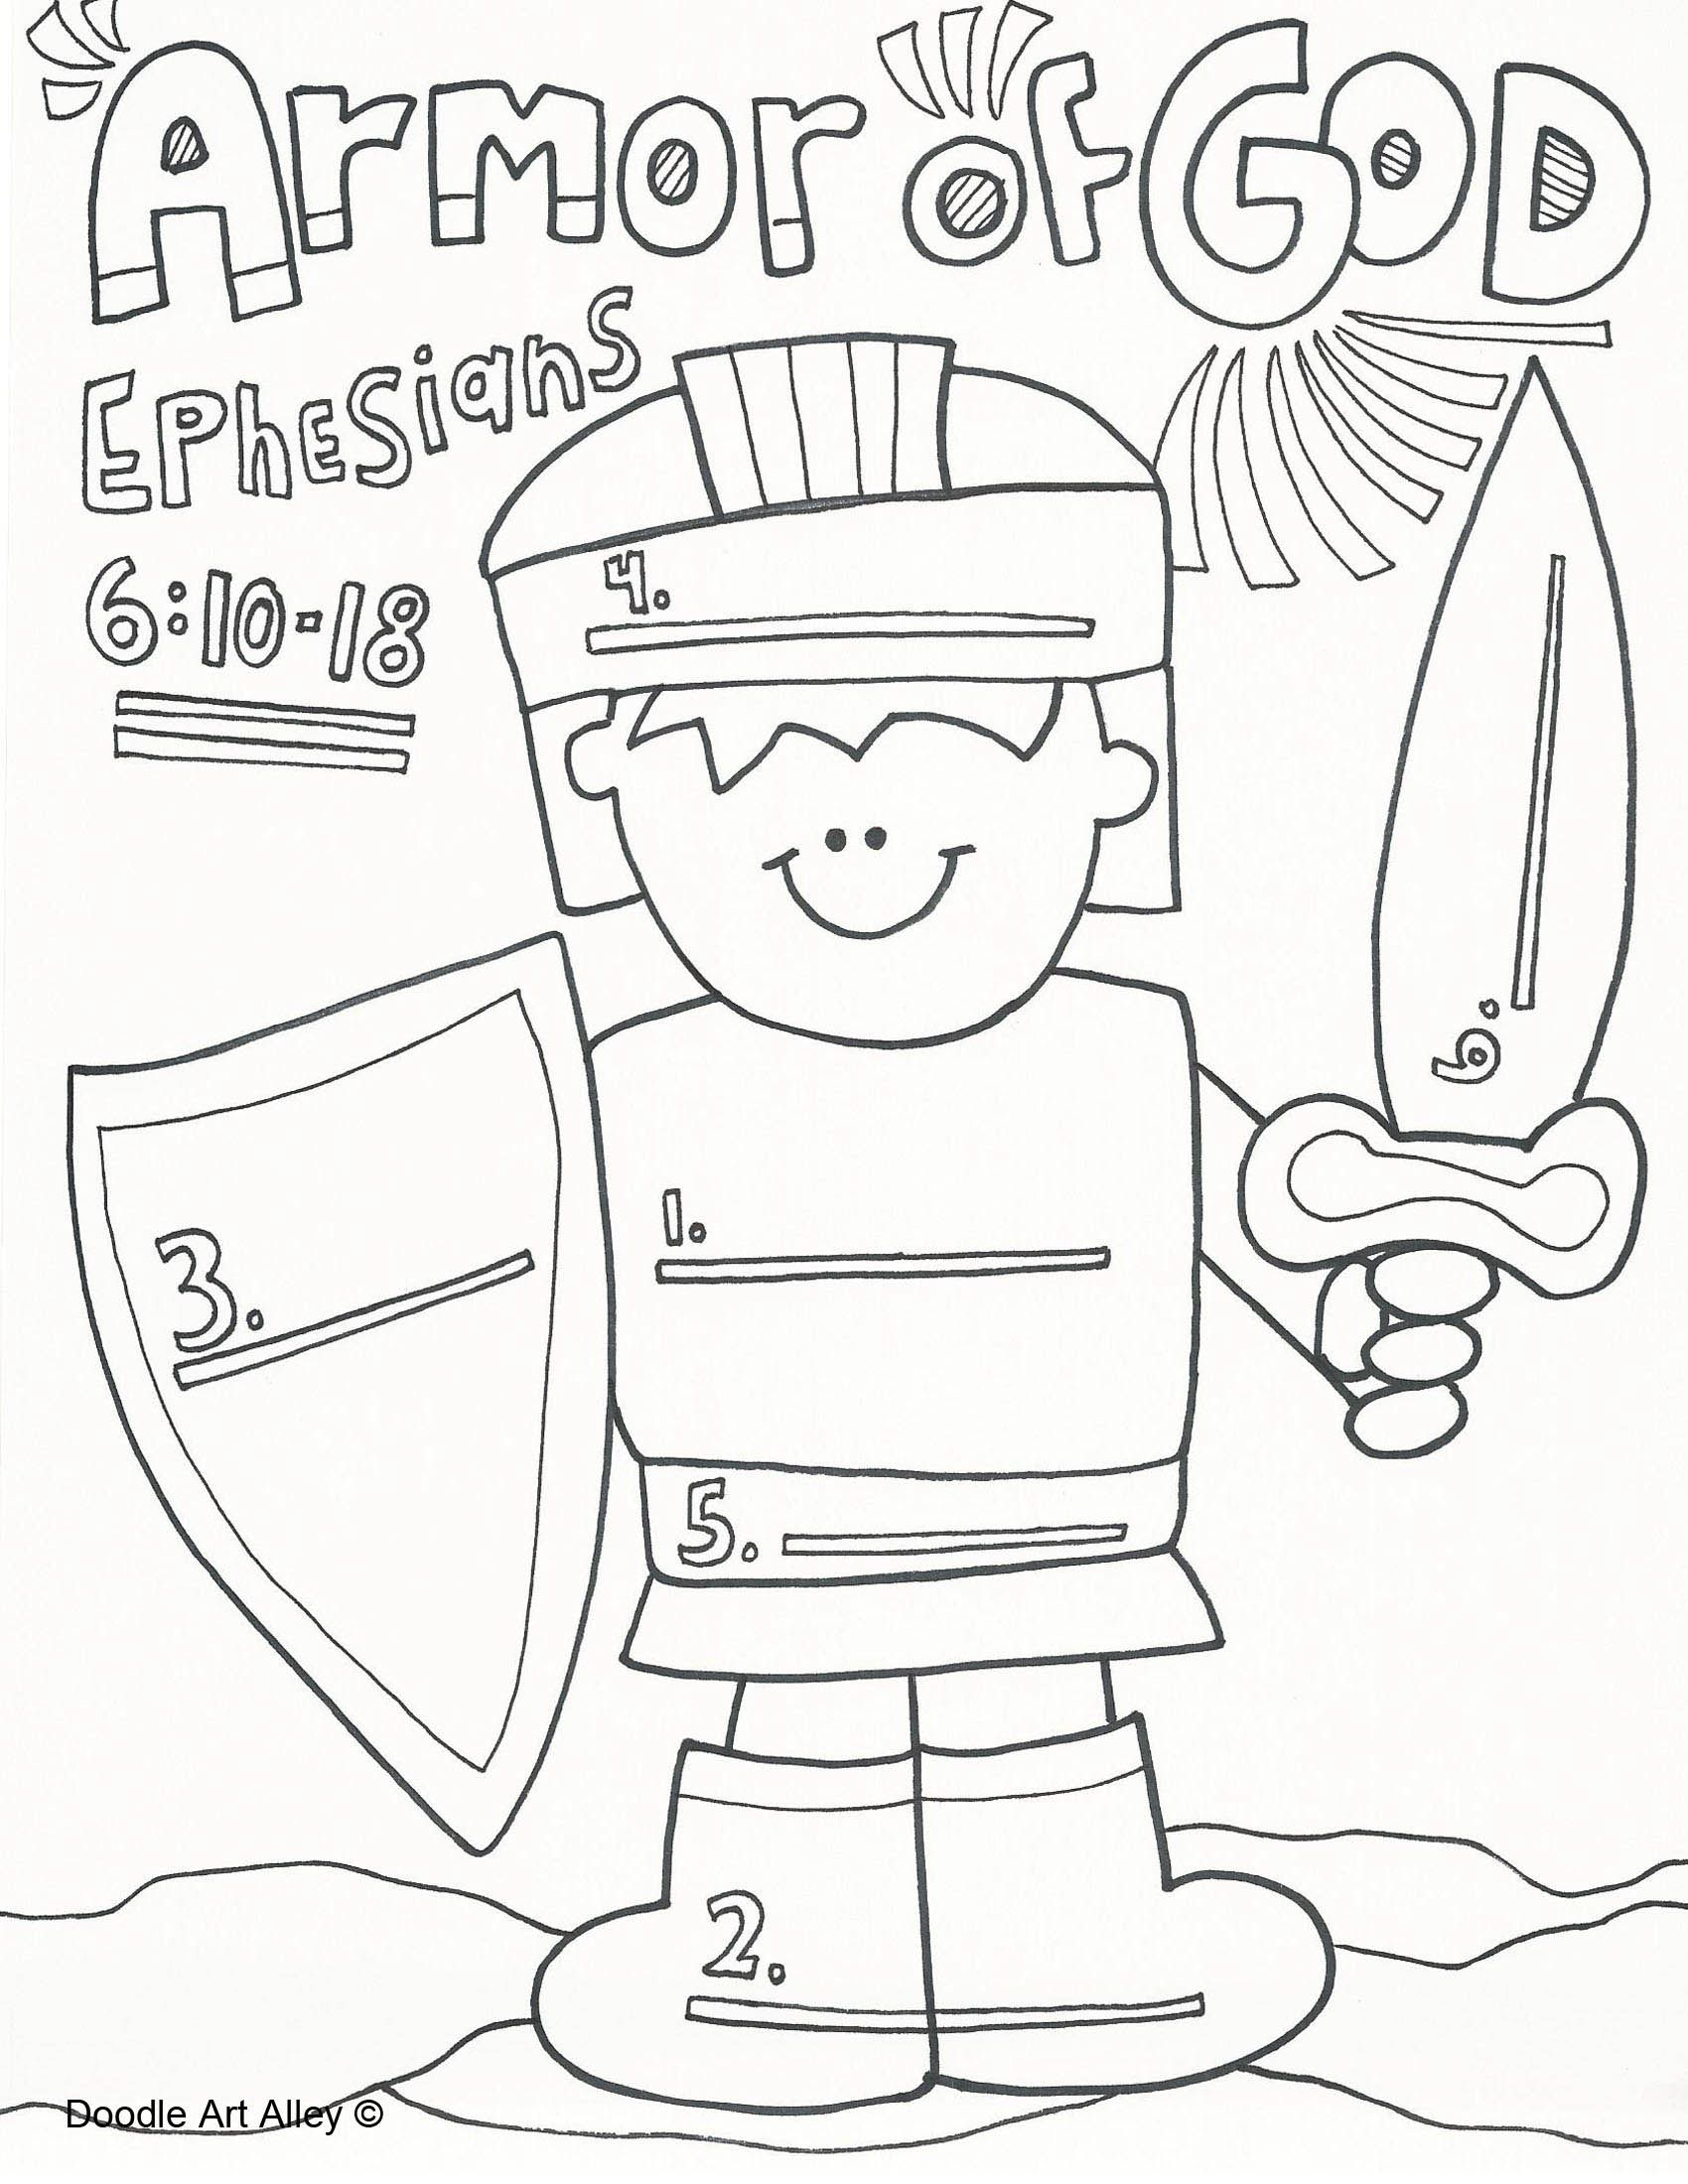 The Christmas Angel Blog Teaching The Armor Of God